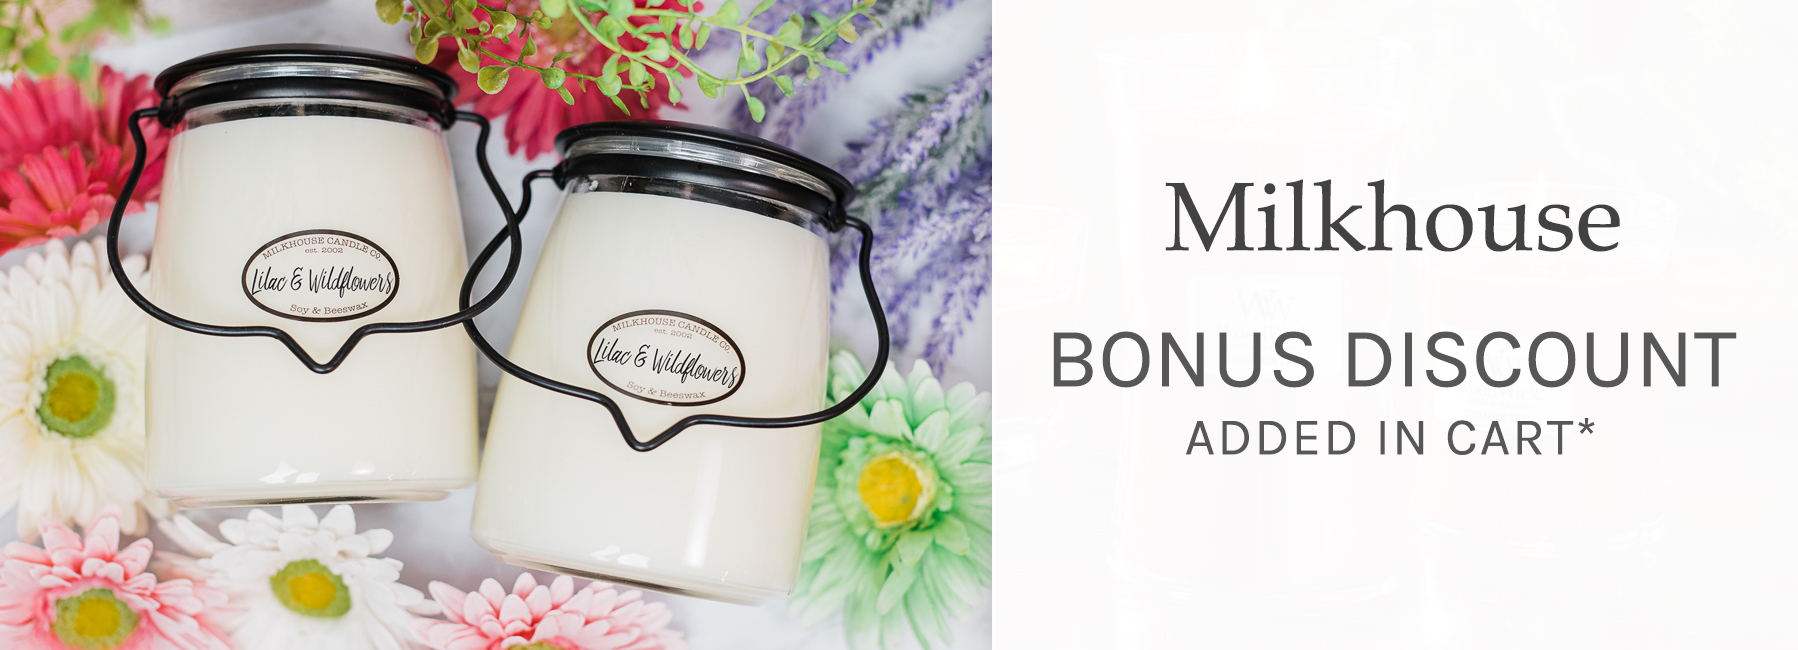 Milkhouse - Bonus Discount Added in Cart when you spend $50+